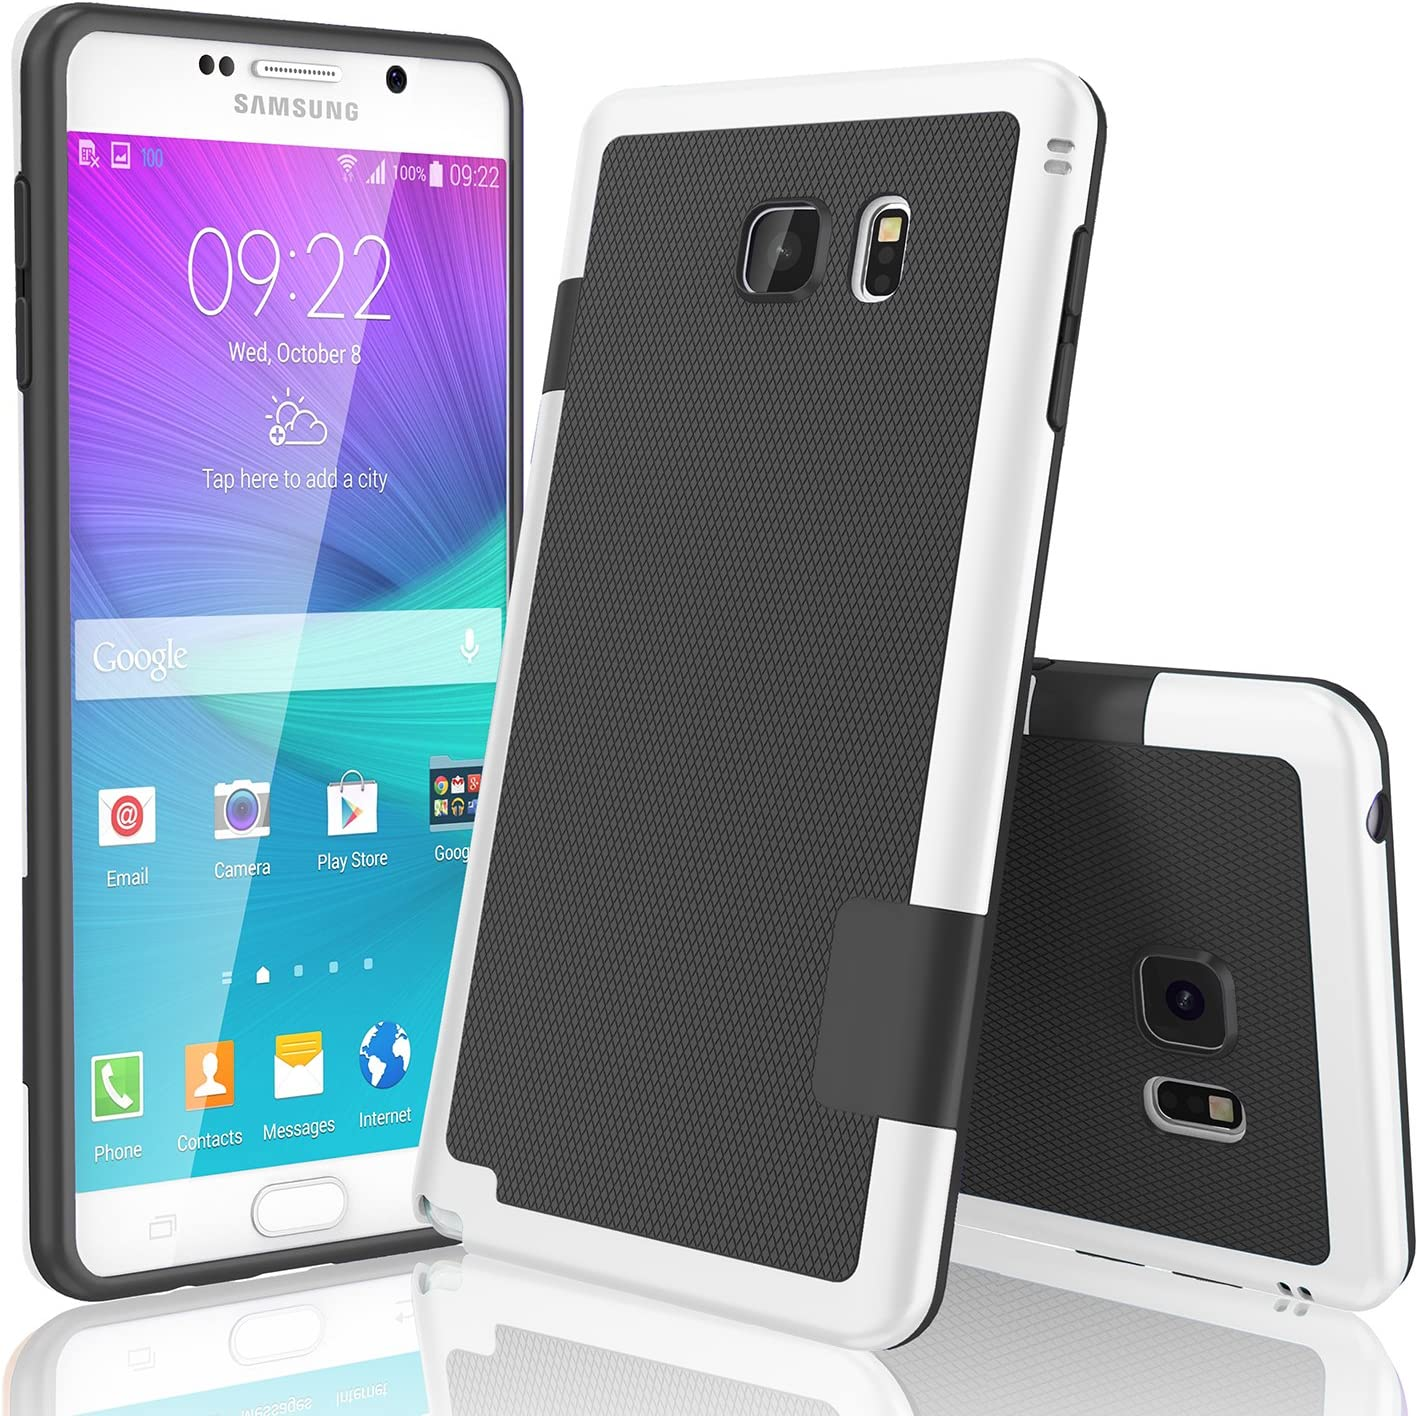 Galaxy Note 5 Case, TILL(TM) Ultra Slim 3 Color Hybrid Impact Anti-Slip Shockproof Soft TPU Hard PC Bumper Extra Front Raised Lip Case Cover for Samsung Galaxy Note 5 V SM-N920 [Black]